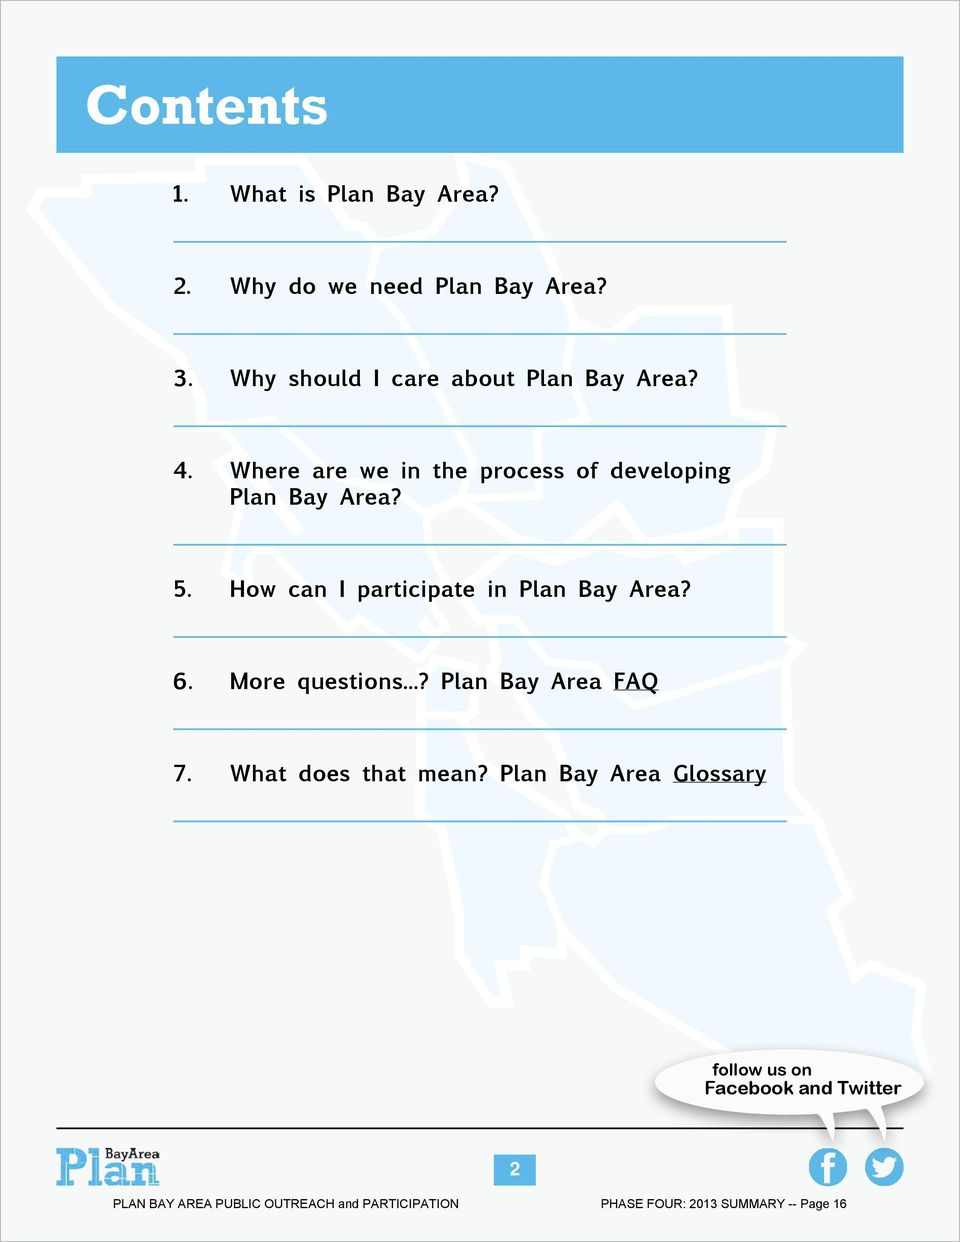 How can I participate in Plan Bay Area? 6. More questions...? Plan Bay Area FAQ 7. What does that mean?